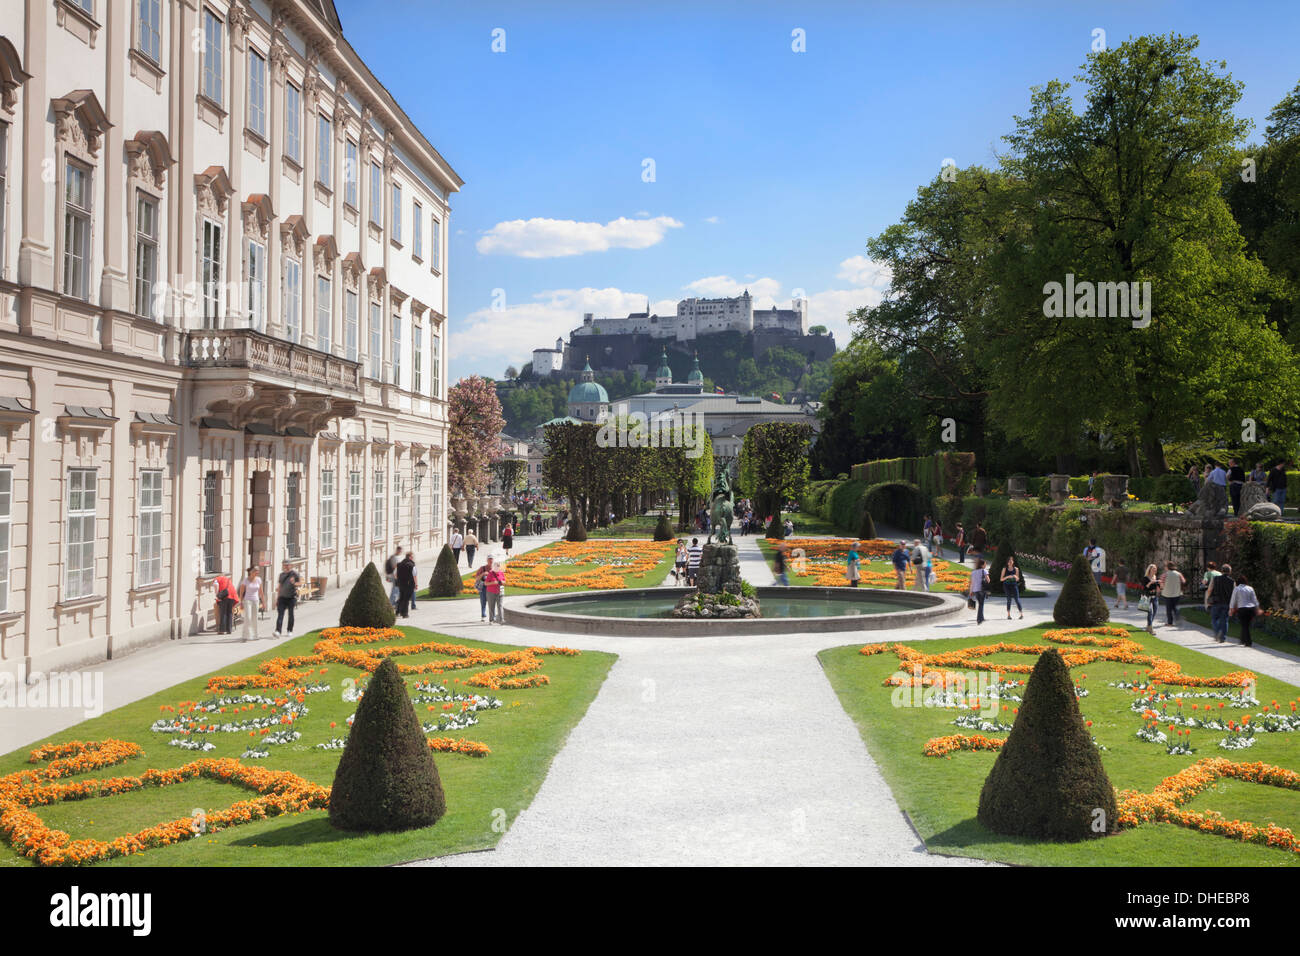 mirabell garden salzburg stockfotos mirabell garden salzburg bilder alamy. Black Bedroom Furniture Sets. Home Design Ideas